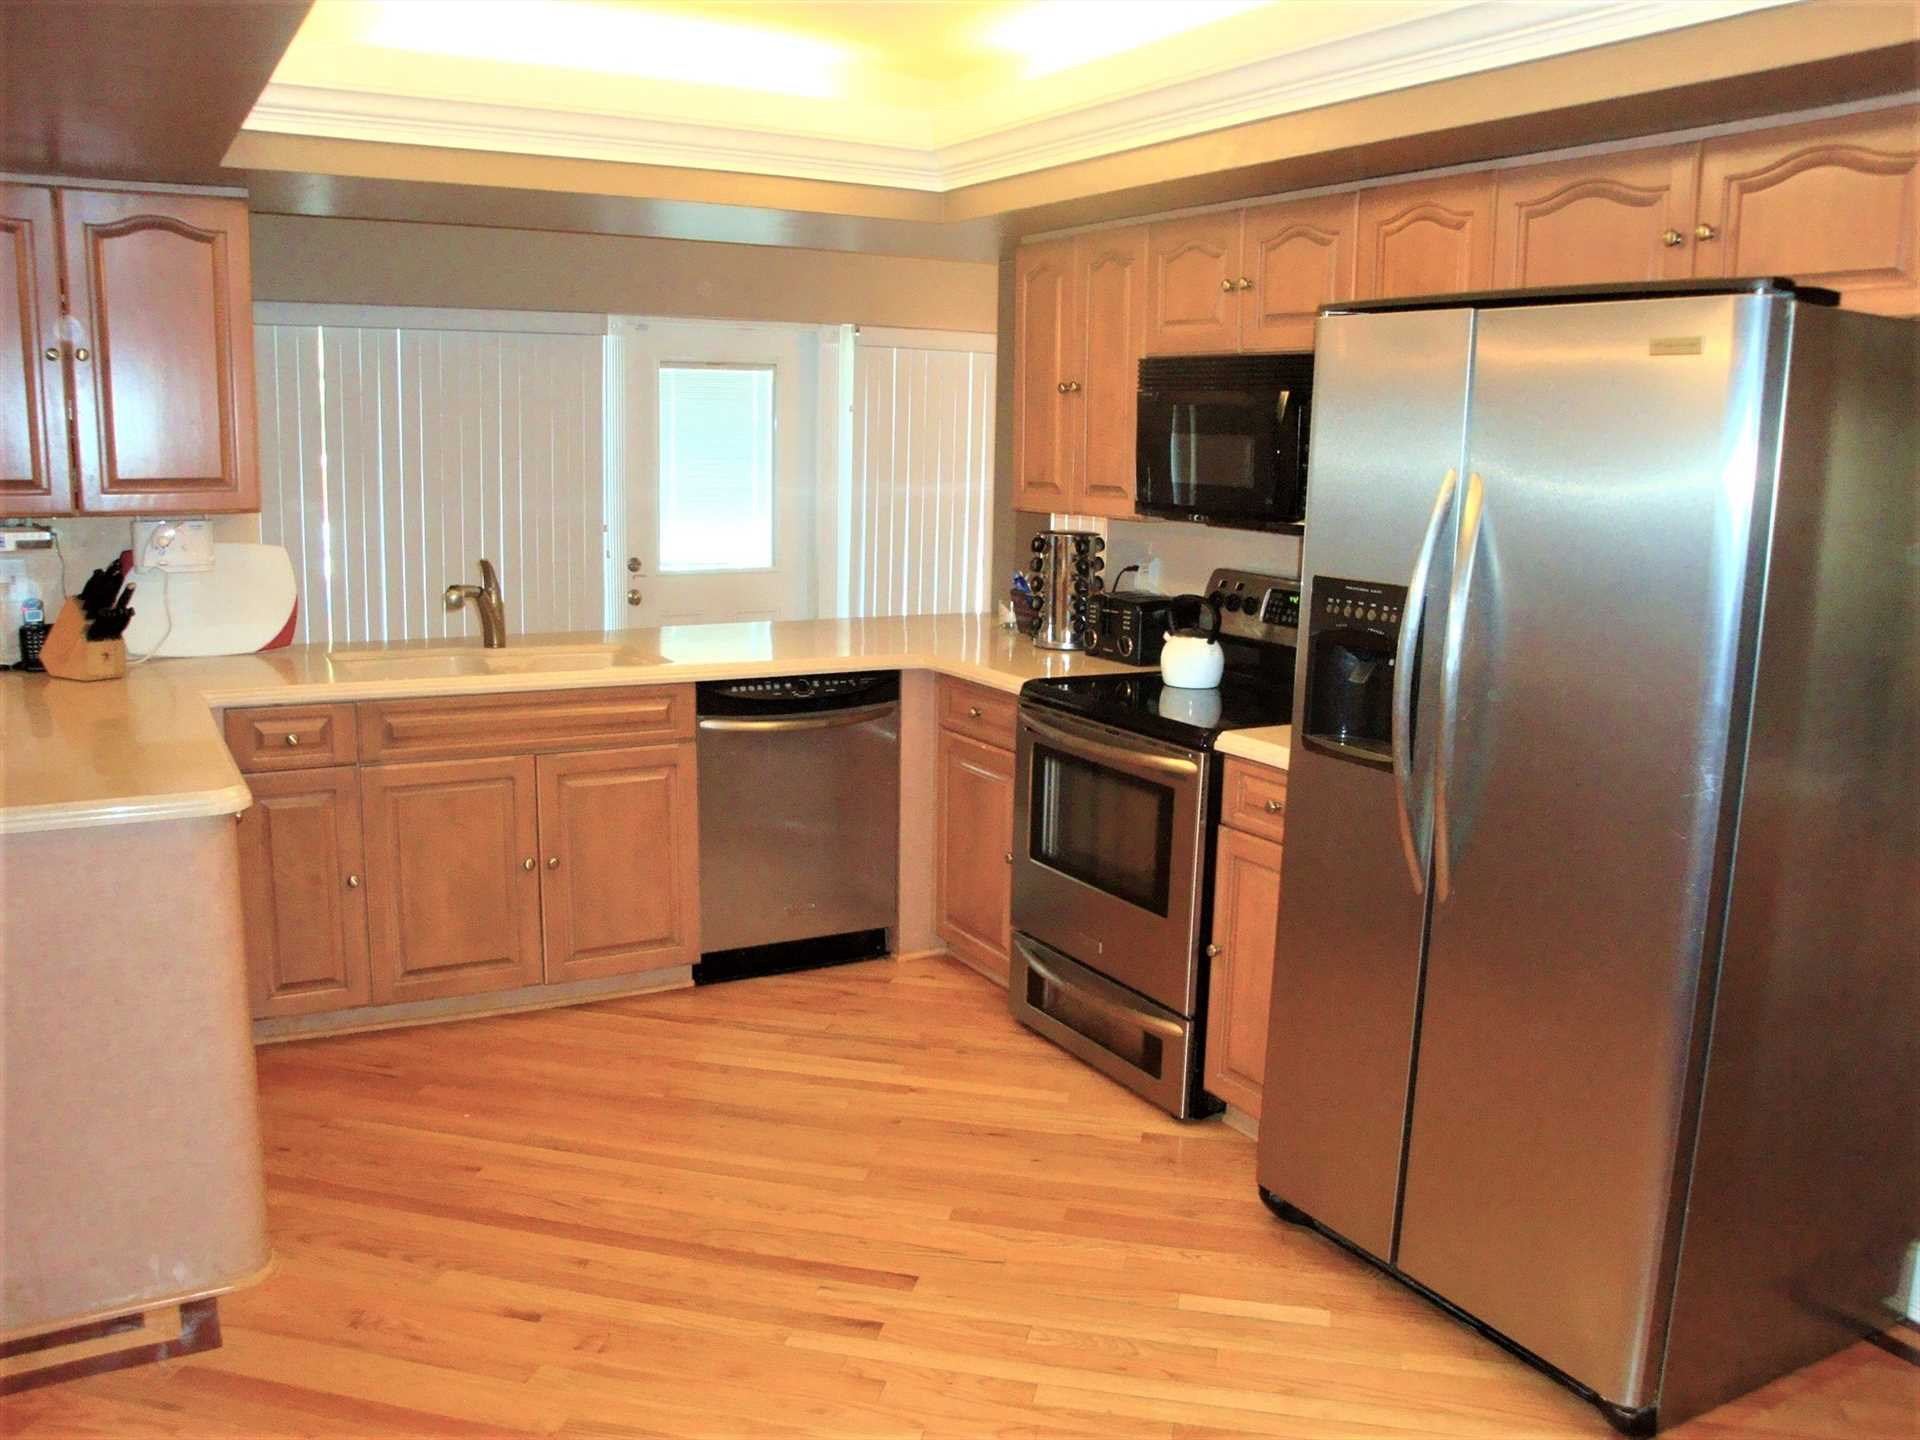 Kitchen opens to the door to the pool and deck area.